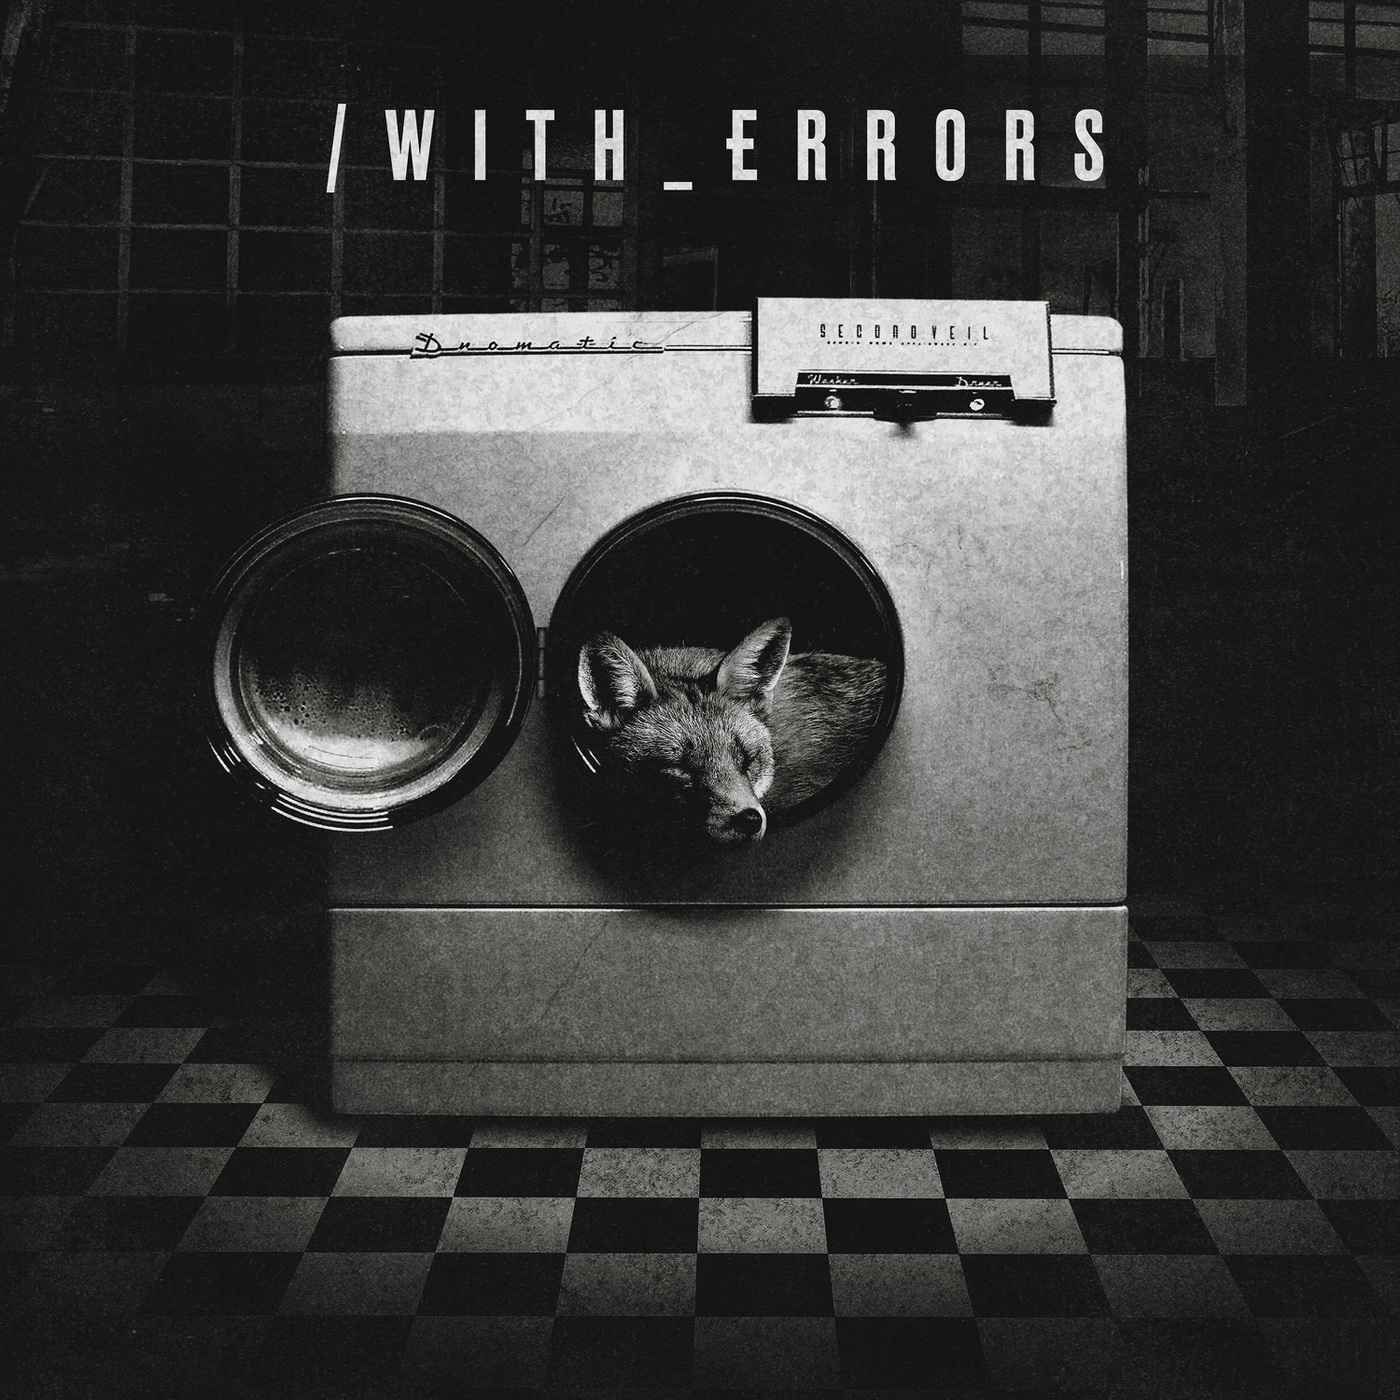 Norma Jean - /with_errors [single] (2019)